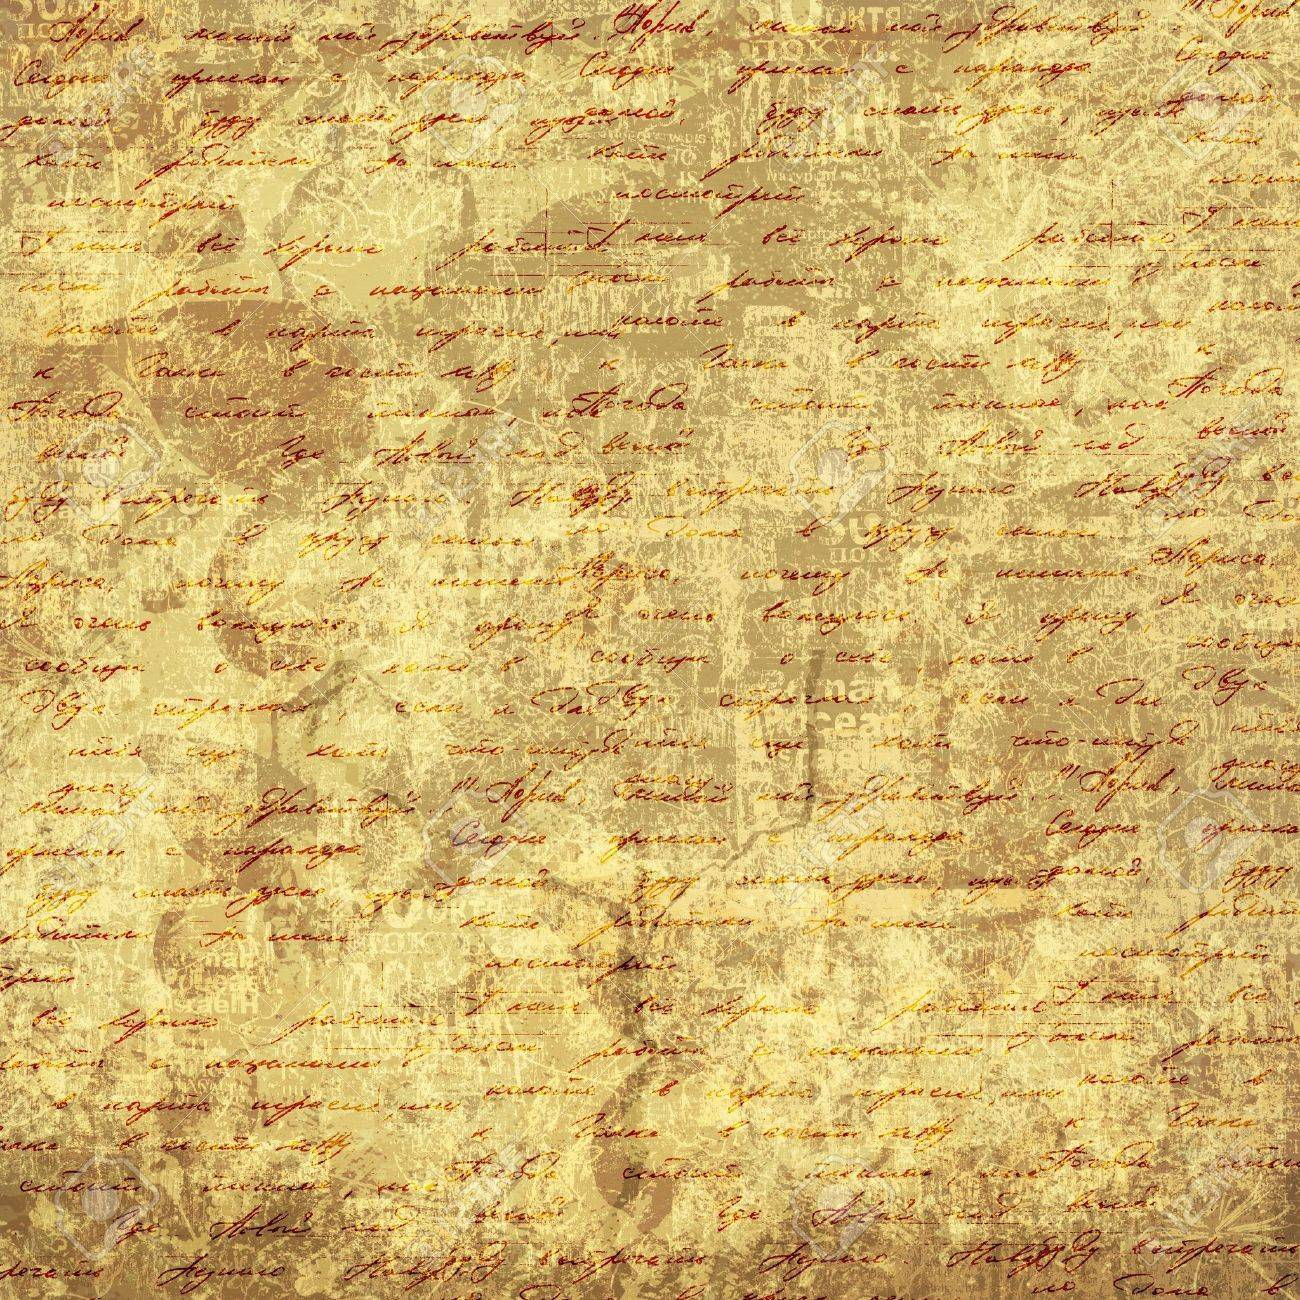 Grunge abstract background with handwrite text for design Stock Photo - 11496474